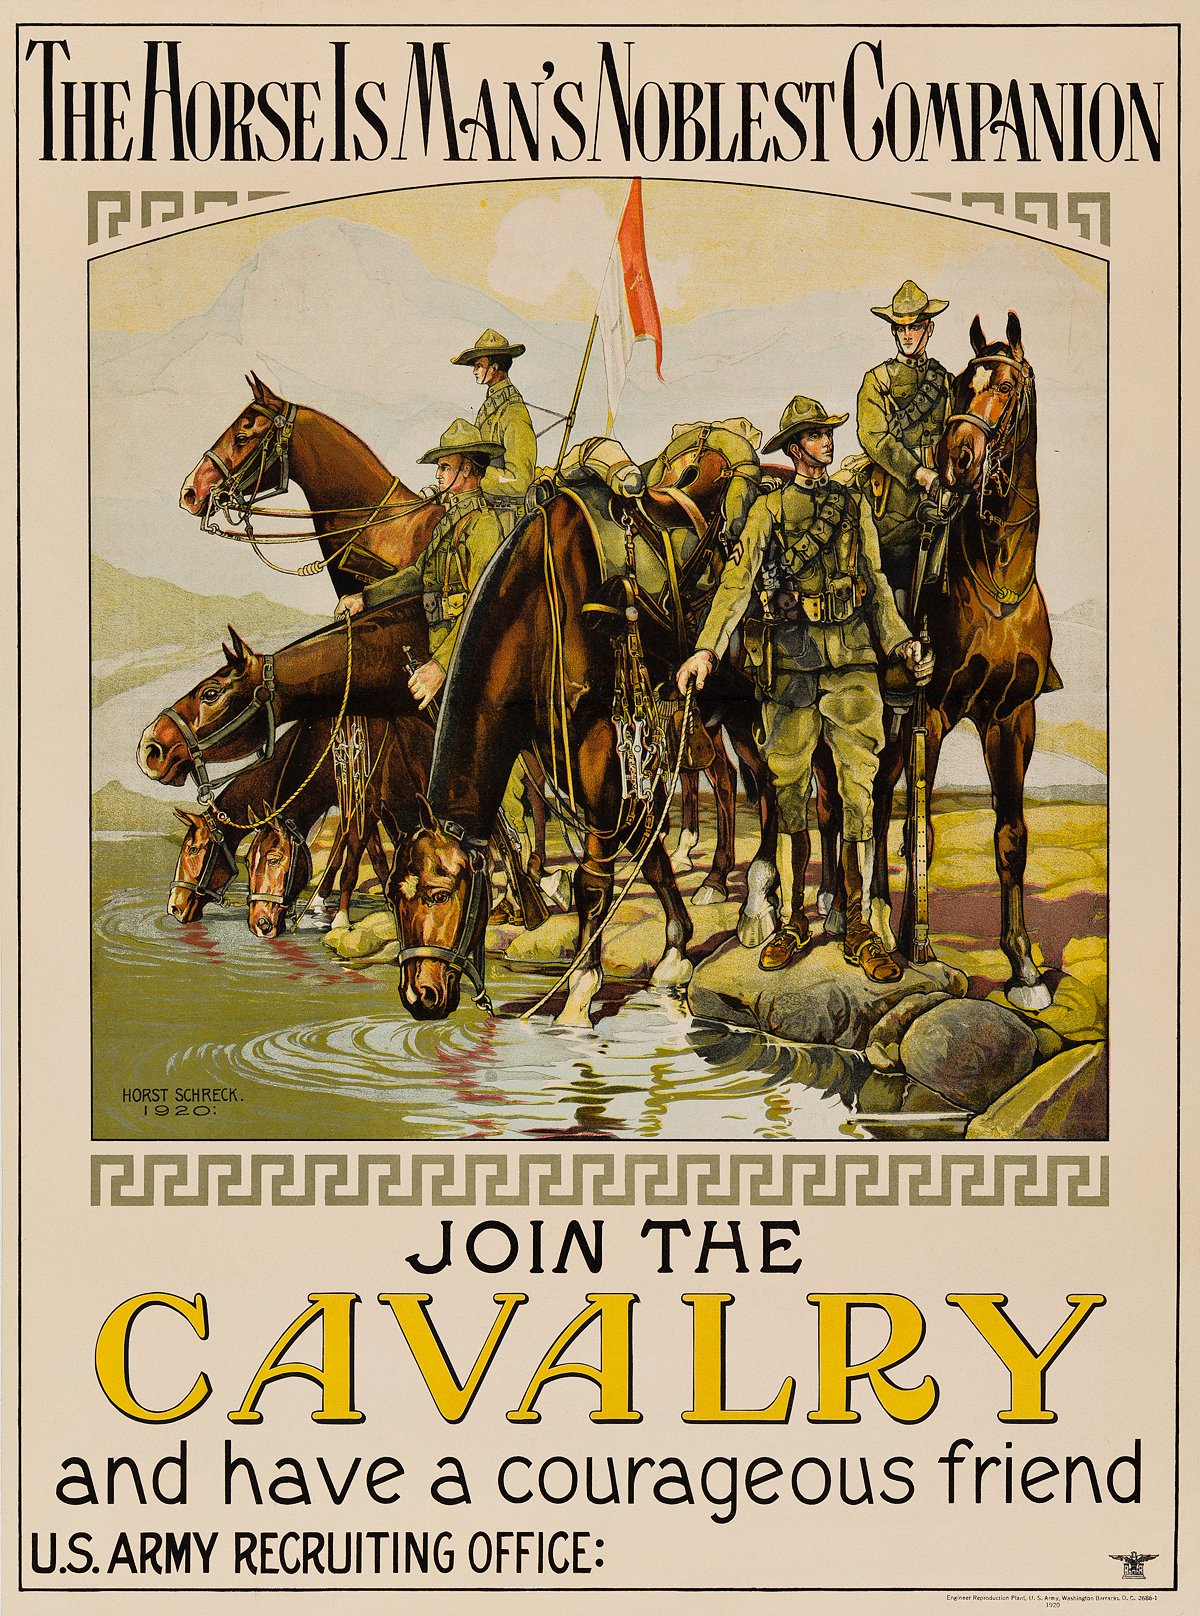 HORST-SCHRECK-(1885-1967)-THE-HORSE-IS-MANS-NOBLEST-COMPANION--JOIN-THE-CAVALRY-AND-HAVE-A-COURAGEOUS-FRIEND-1920-25x18-inches-64